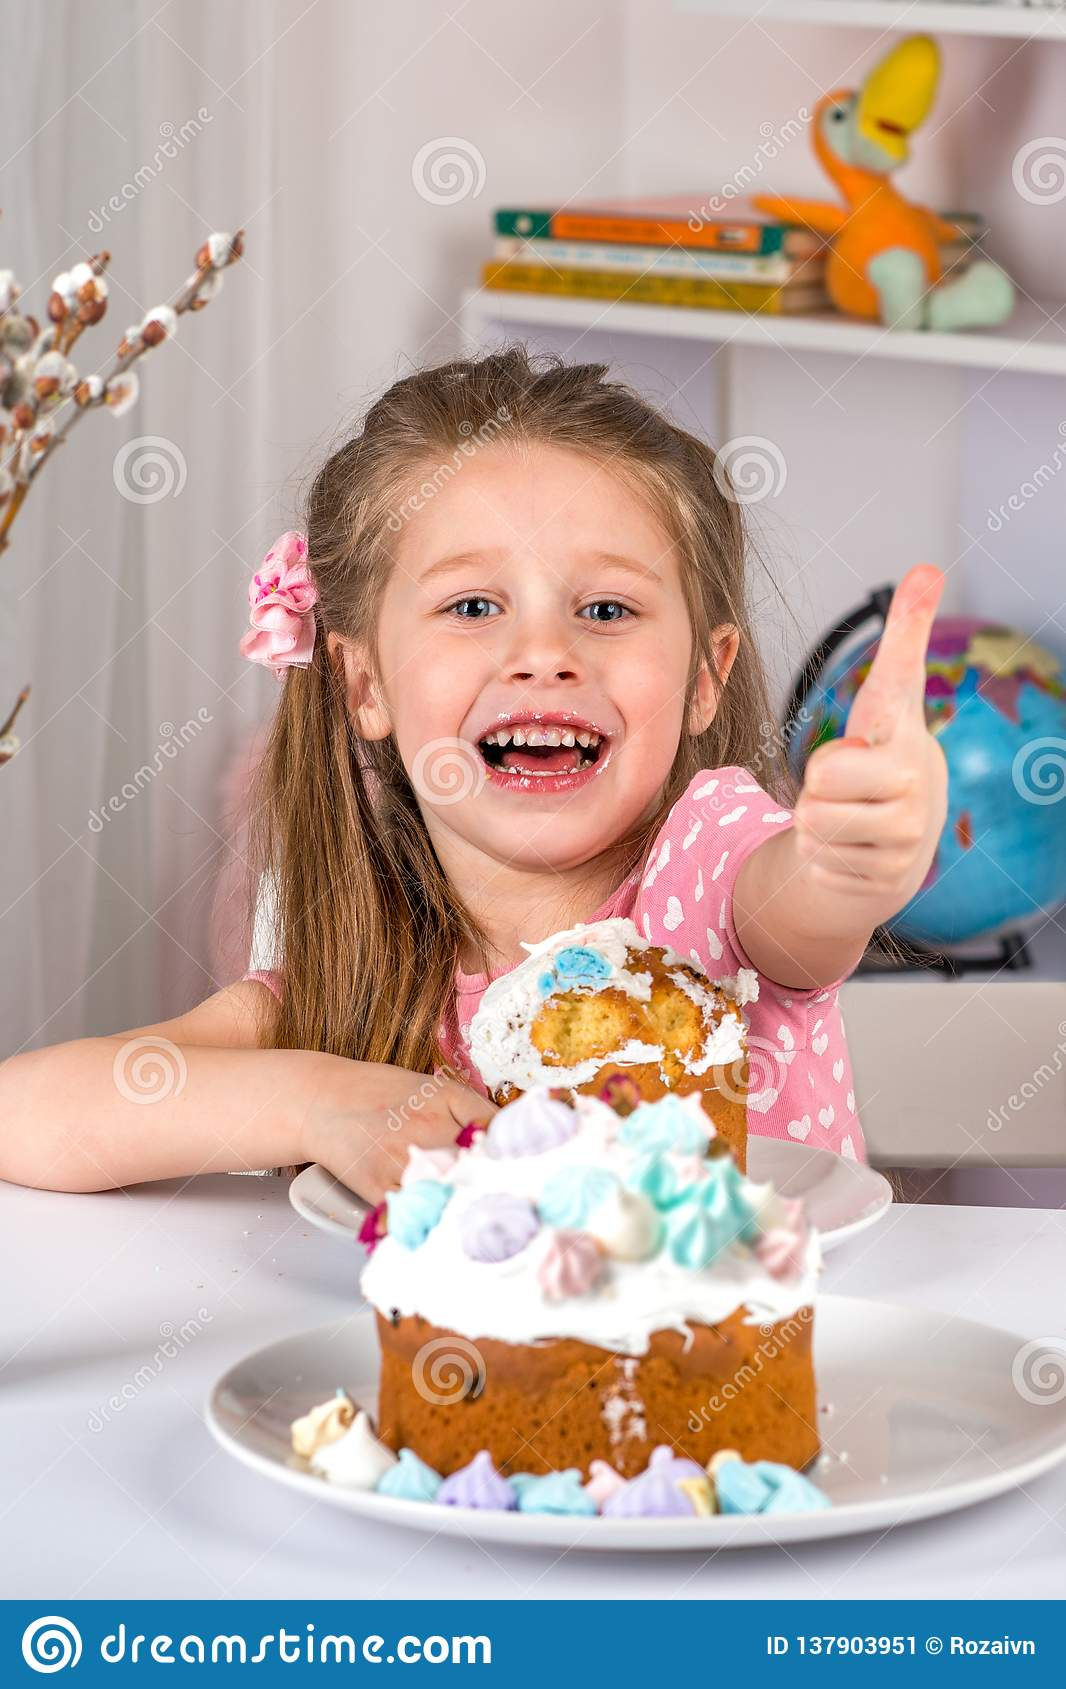 Studio shot of small girl sitting at a table and eating Easter . She have a festive mood and gestures a sign of approval